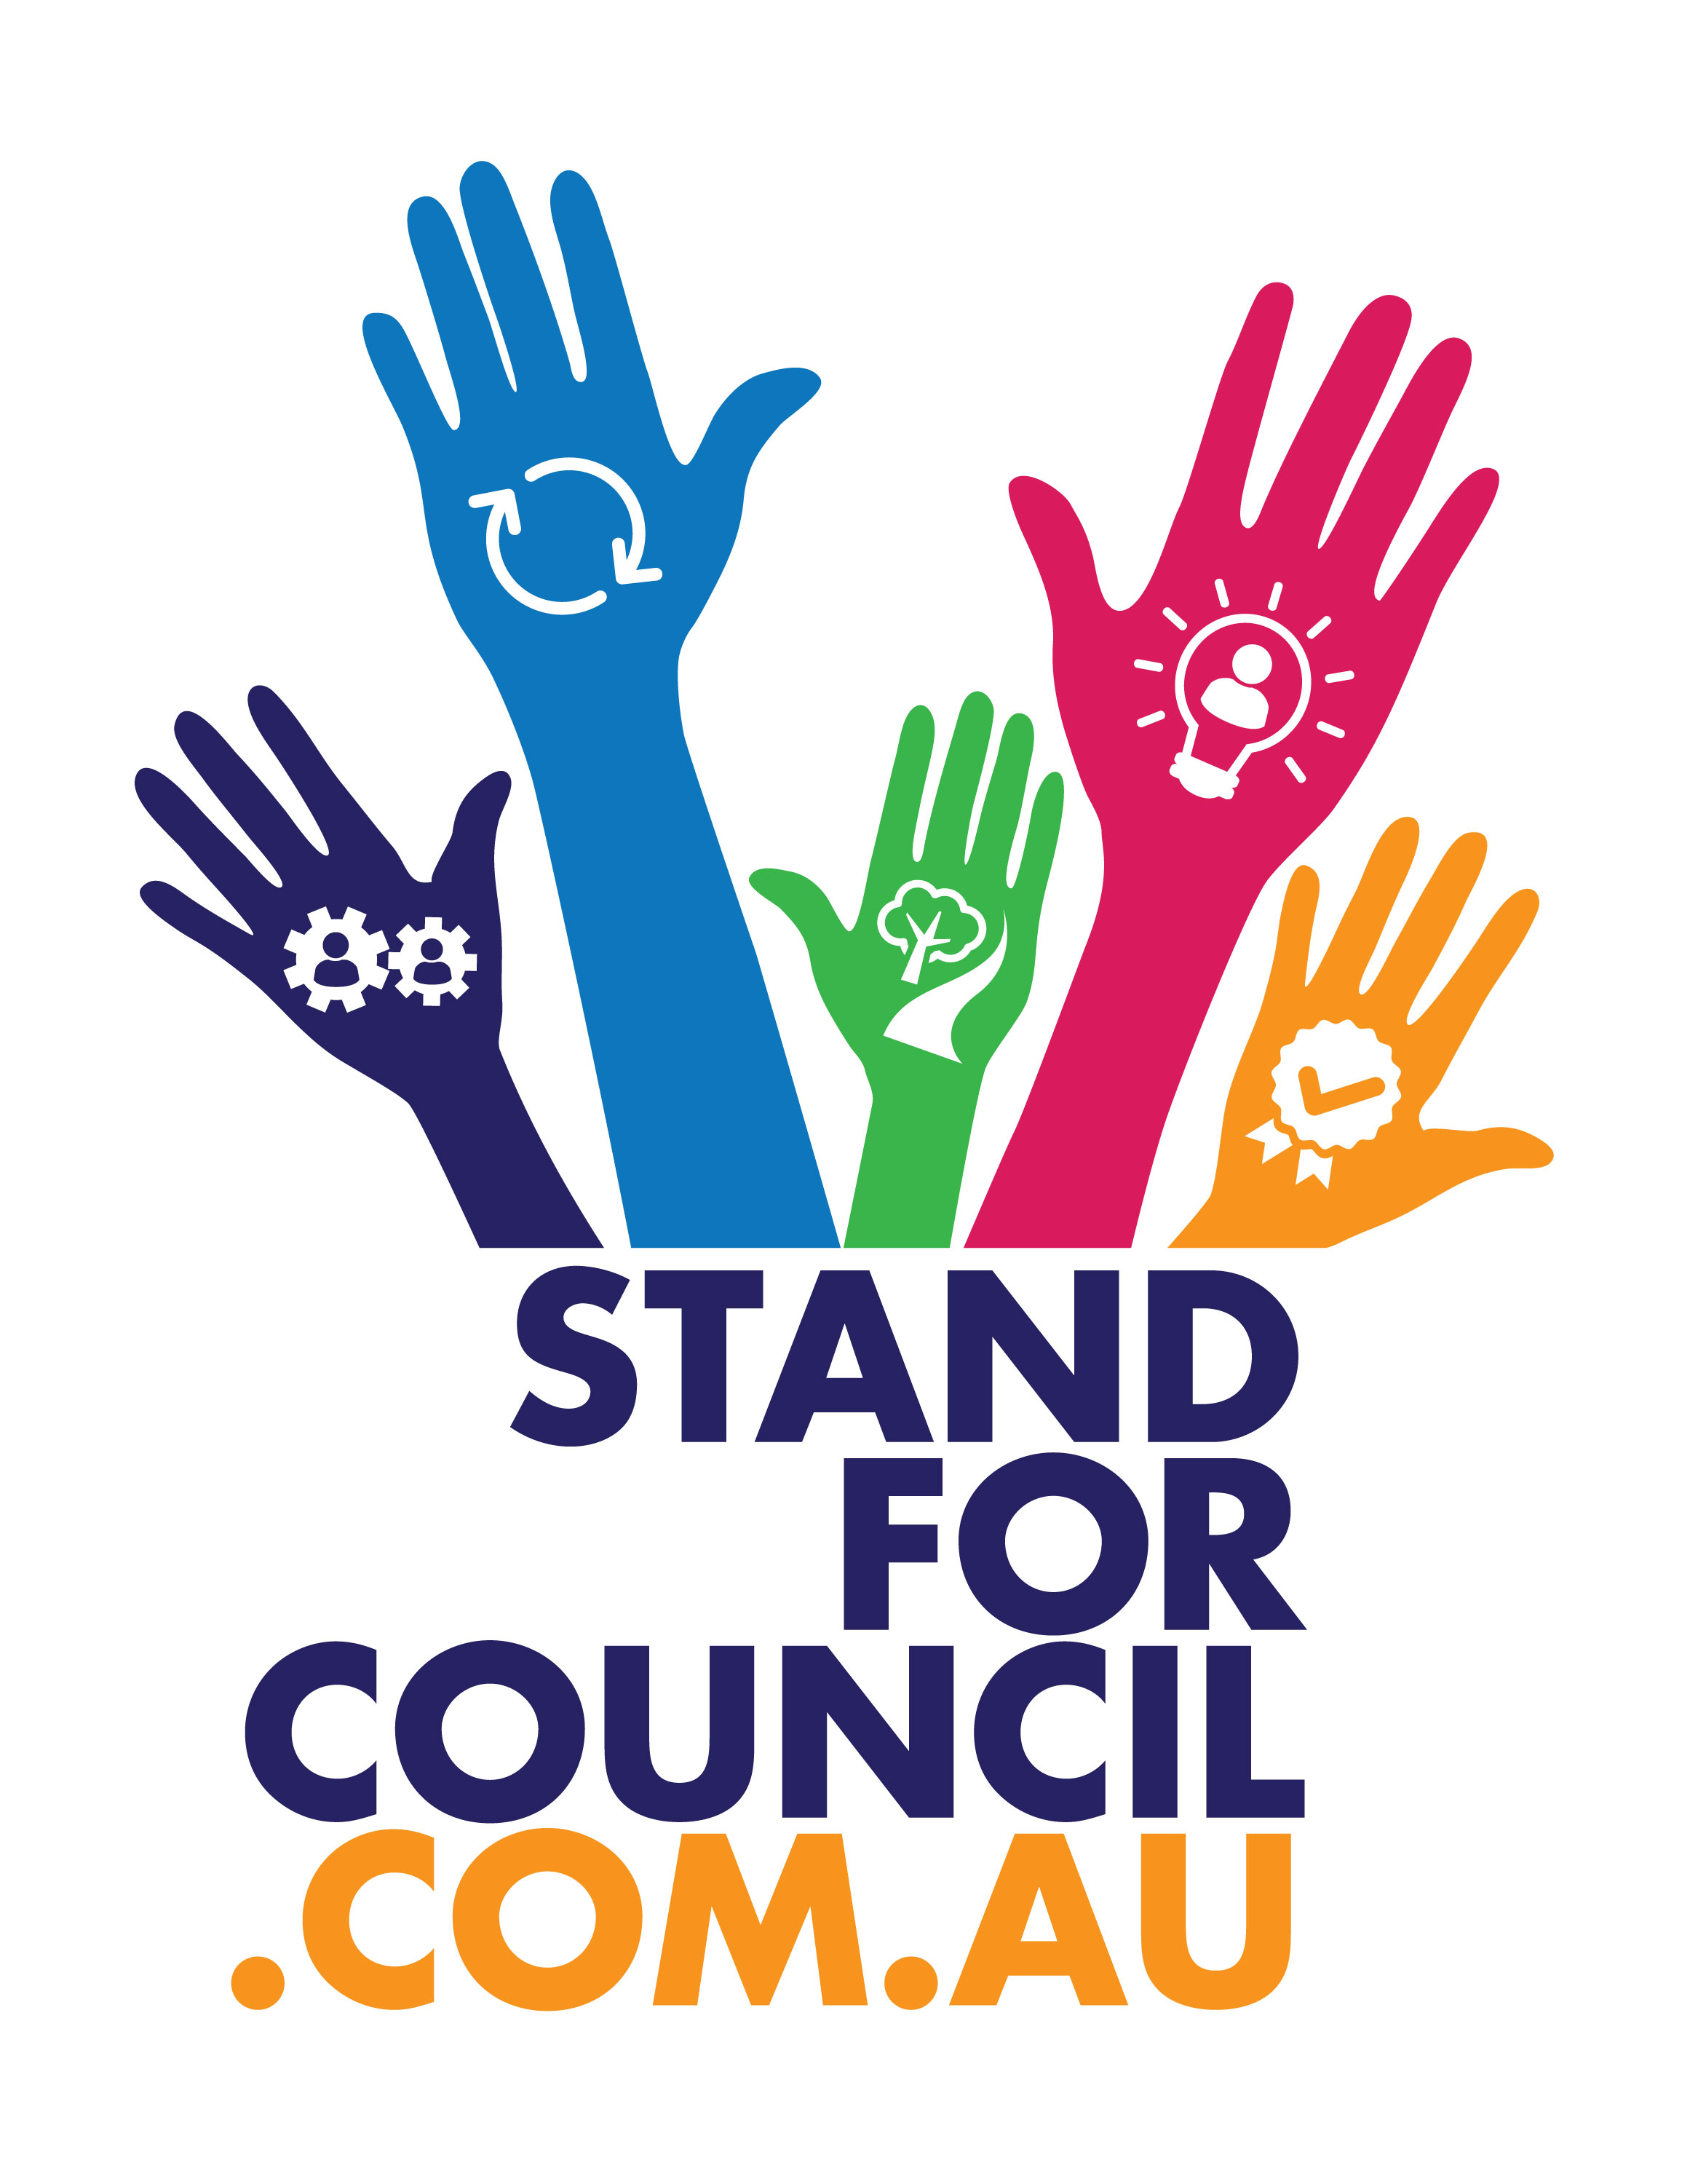 Stand for council portrait logo